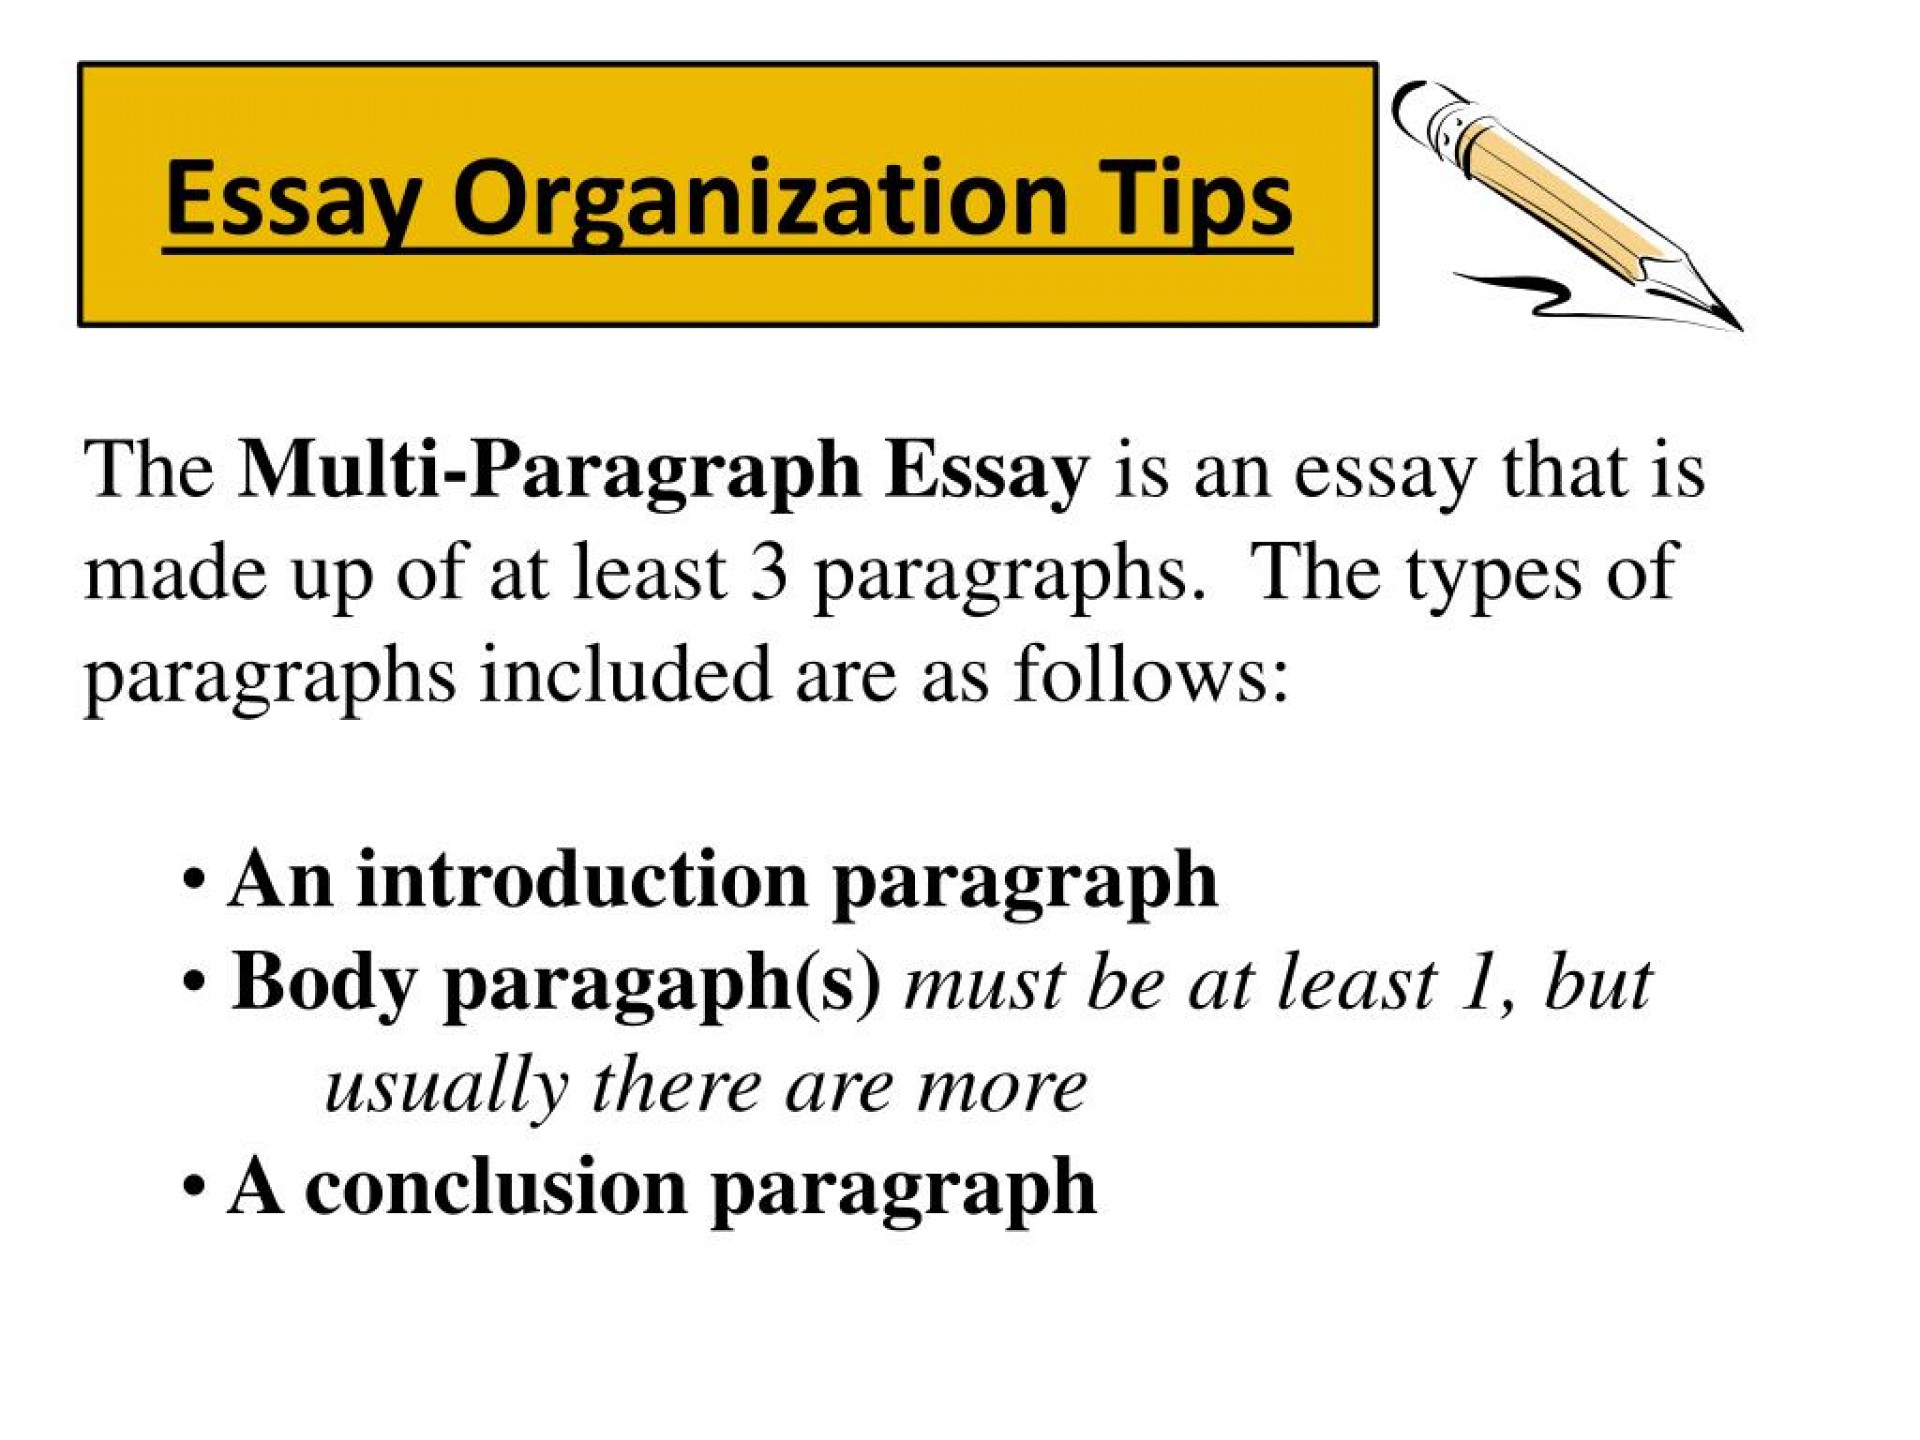 001 Essay Organization Tips L Impressive Techniques Activity Definition 1920